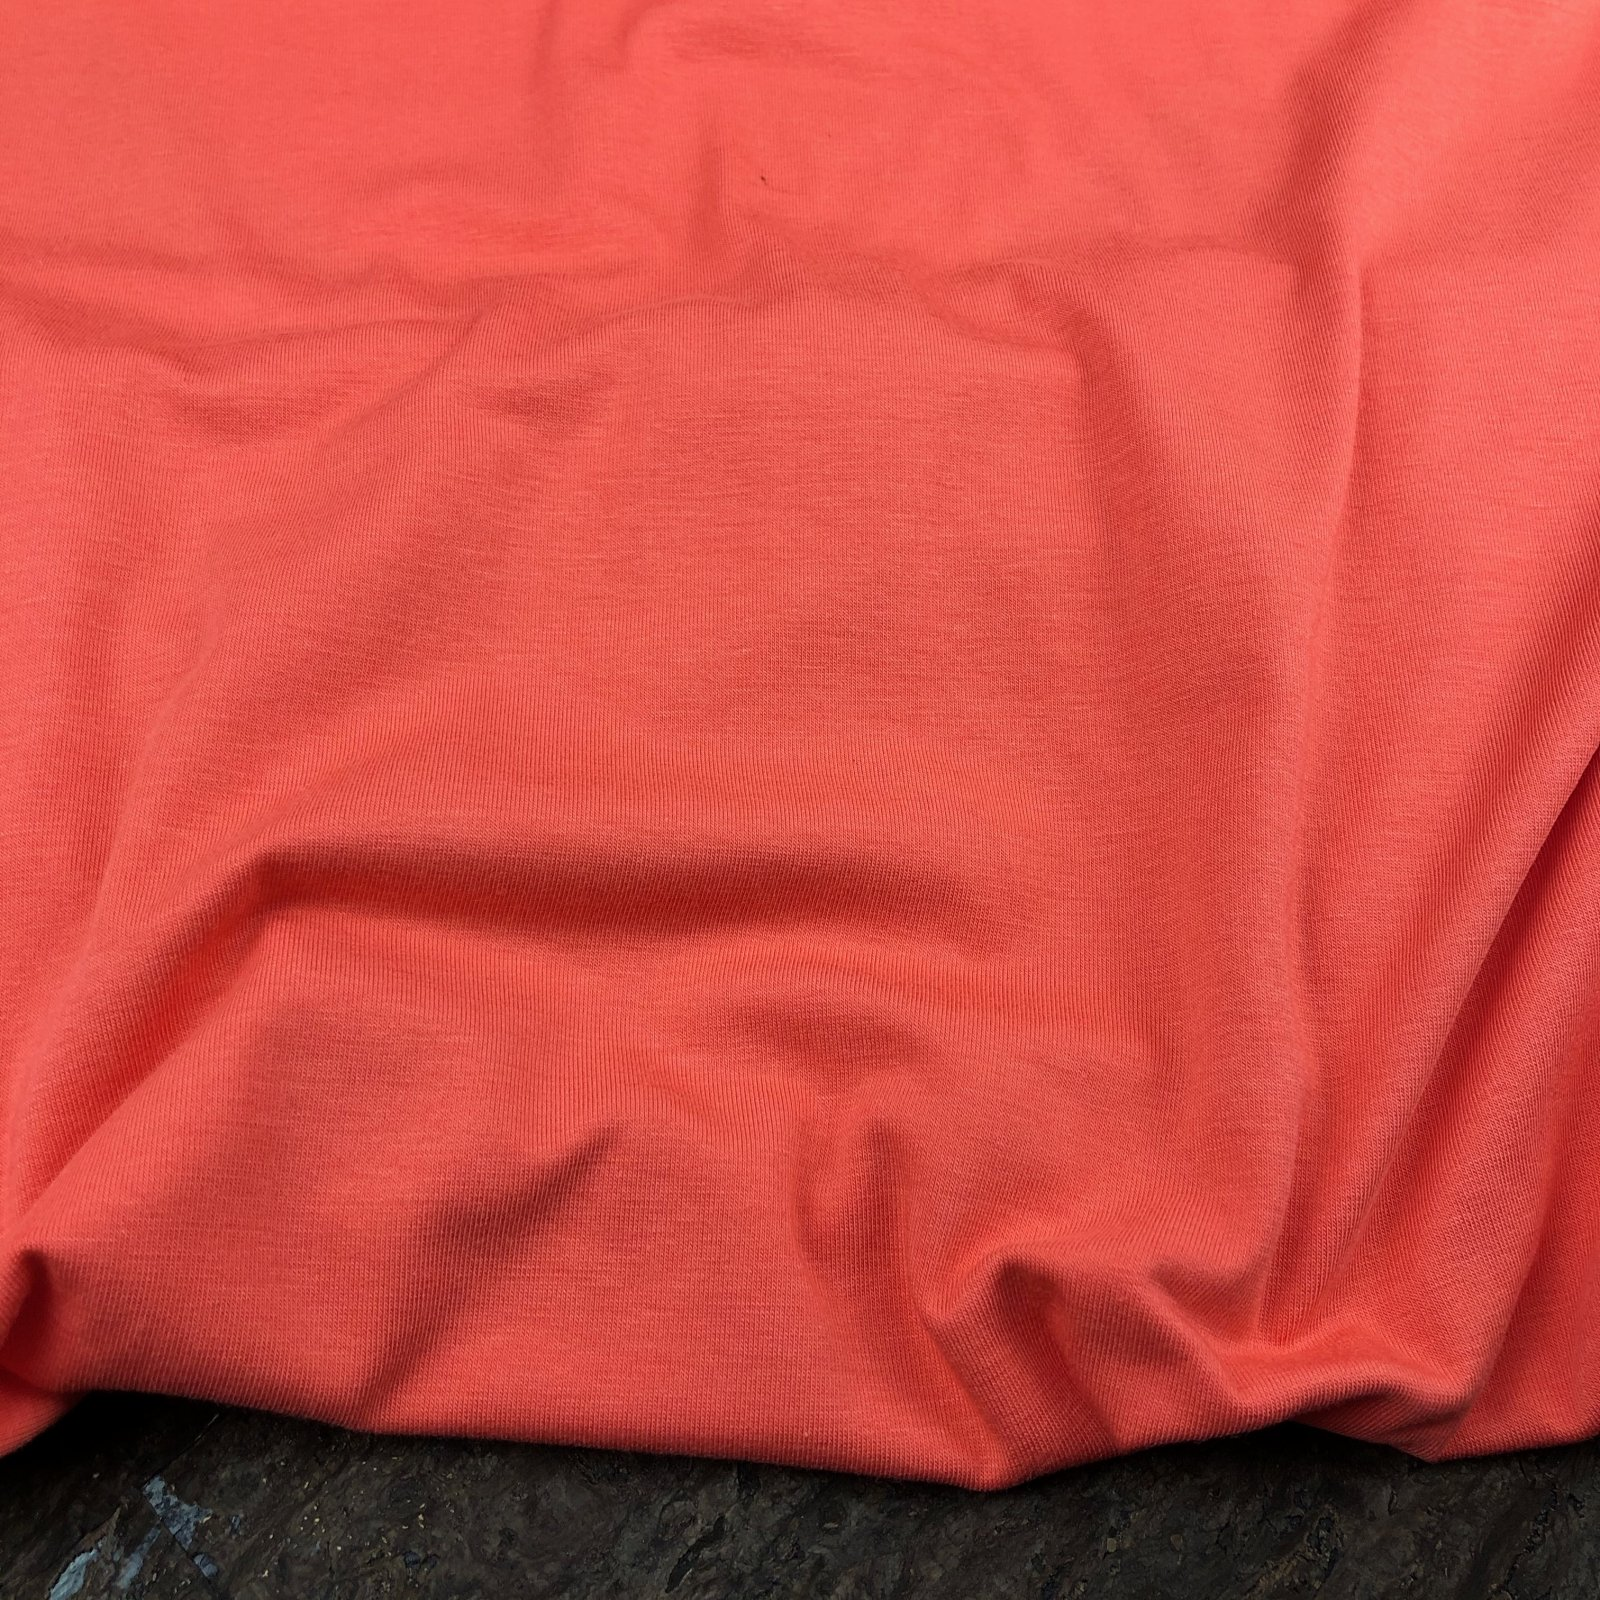 Bamboo Cotton Jersey Knit - 150 gsm - Hot Coral - Kendor